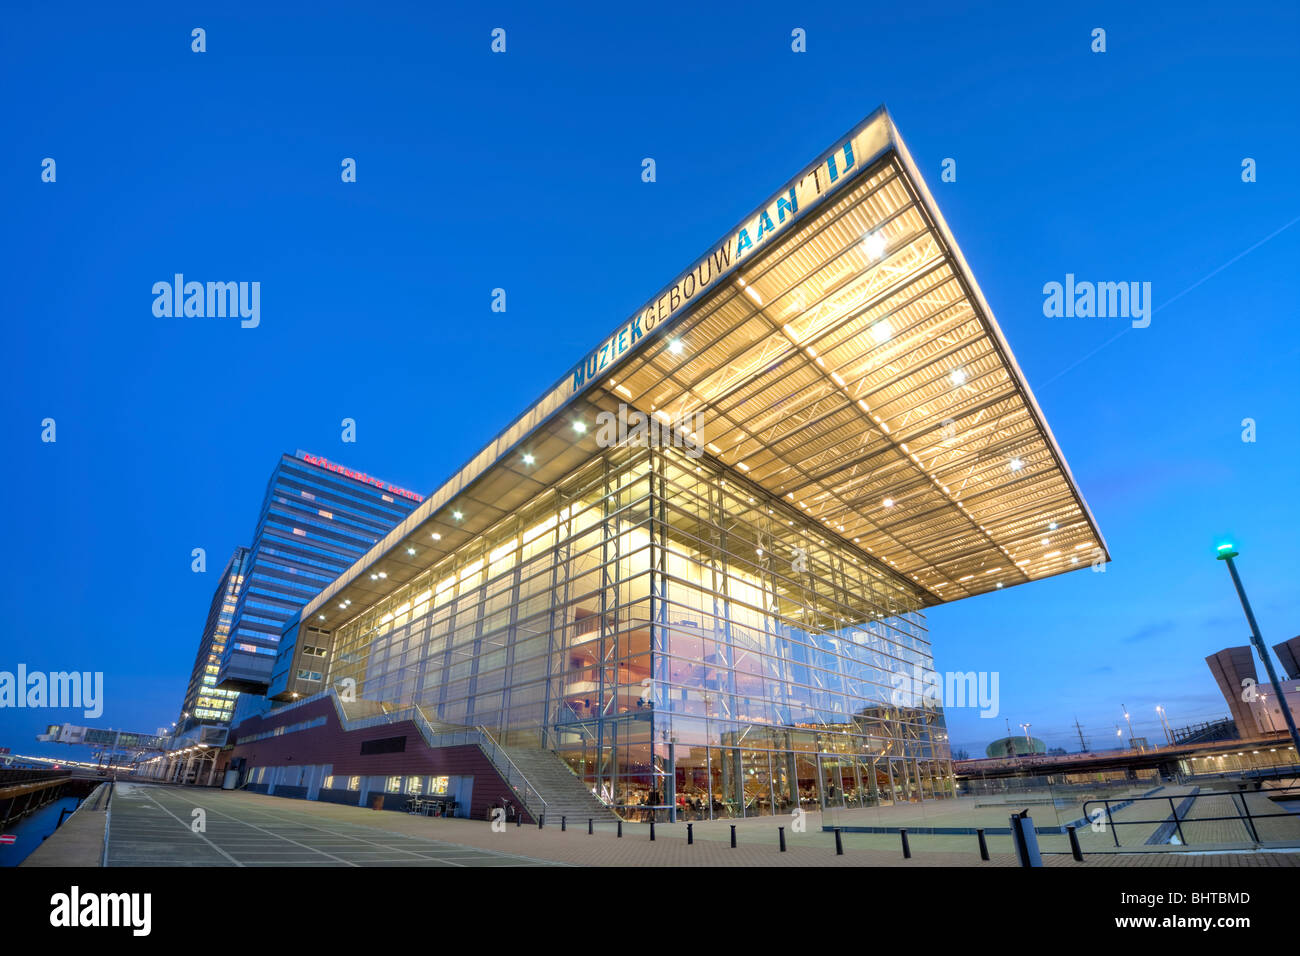 Amsterdam Muziekgebouw aan 't IJ, Music Building at the IJ; Star Ferry Restaurant at dusk. Movenpick Hotel; - Stock Image